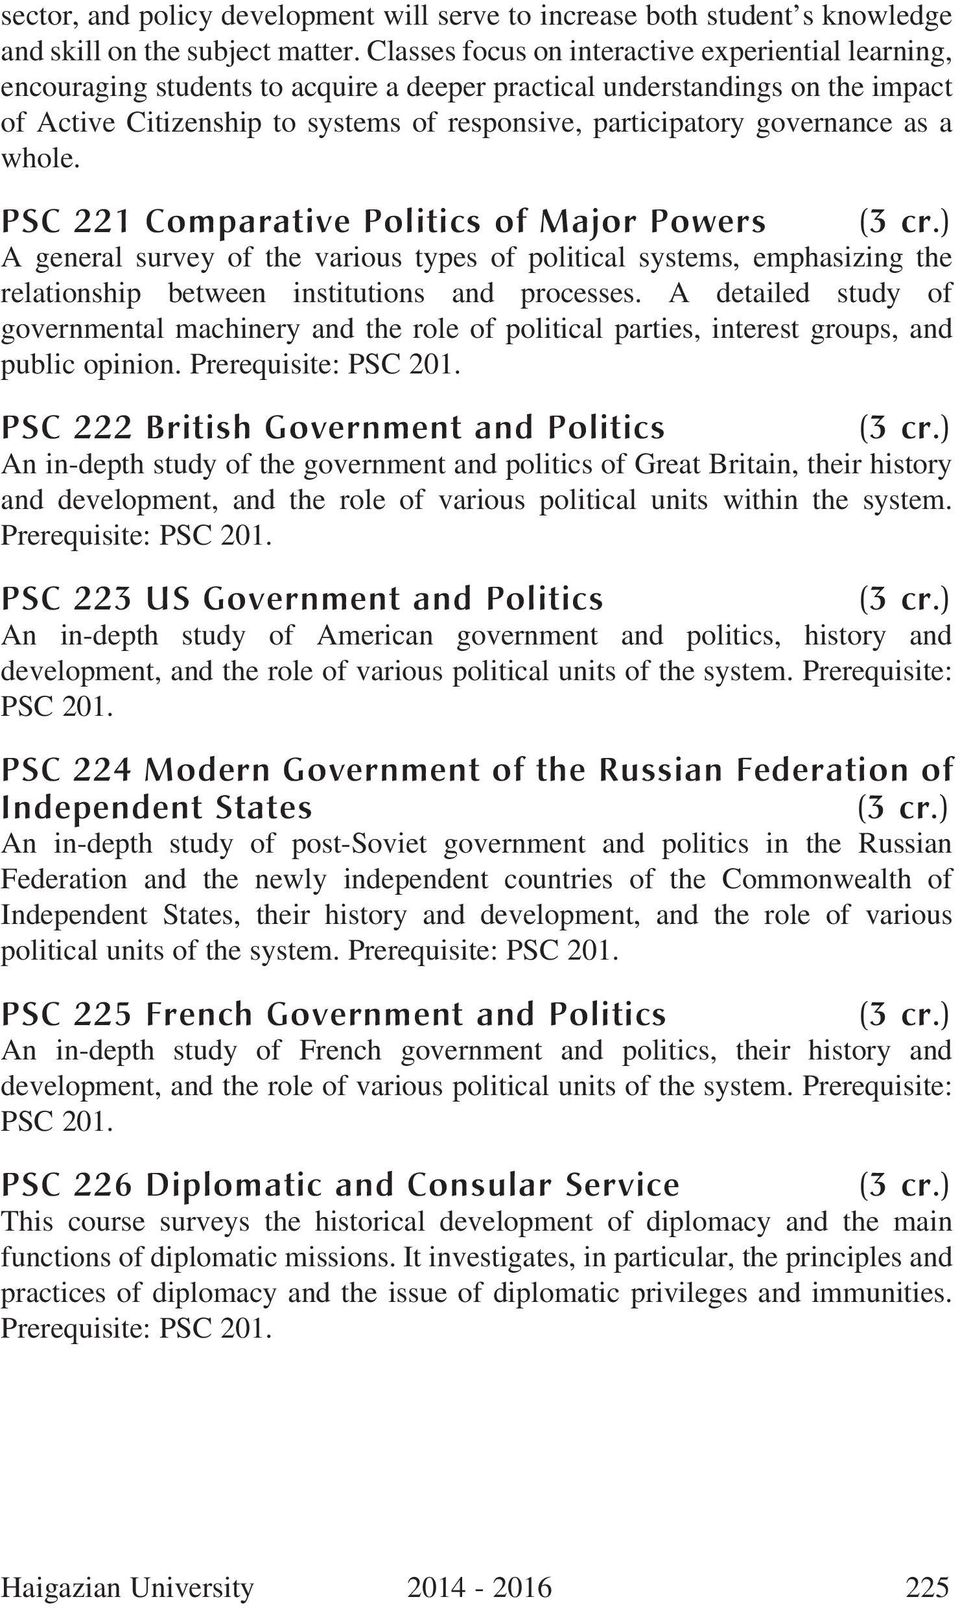 governance as a whole. PSC 221 Comparative Politics of Major Powers A general survey of the various types of political systems, emphasizing the relationship between institutions and processes.